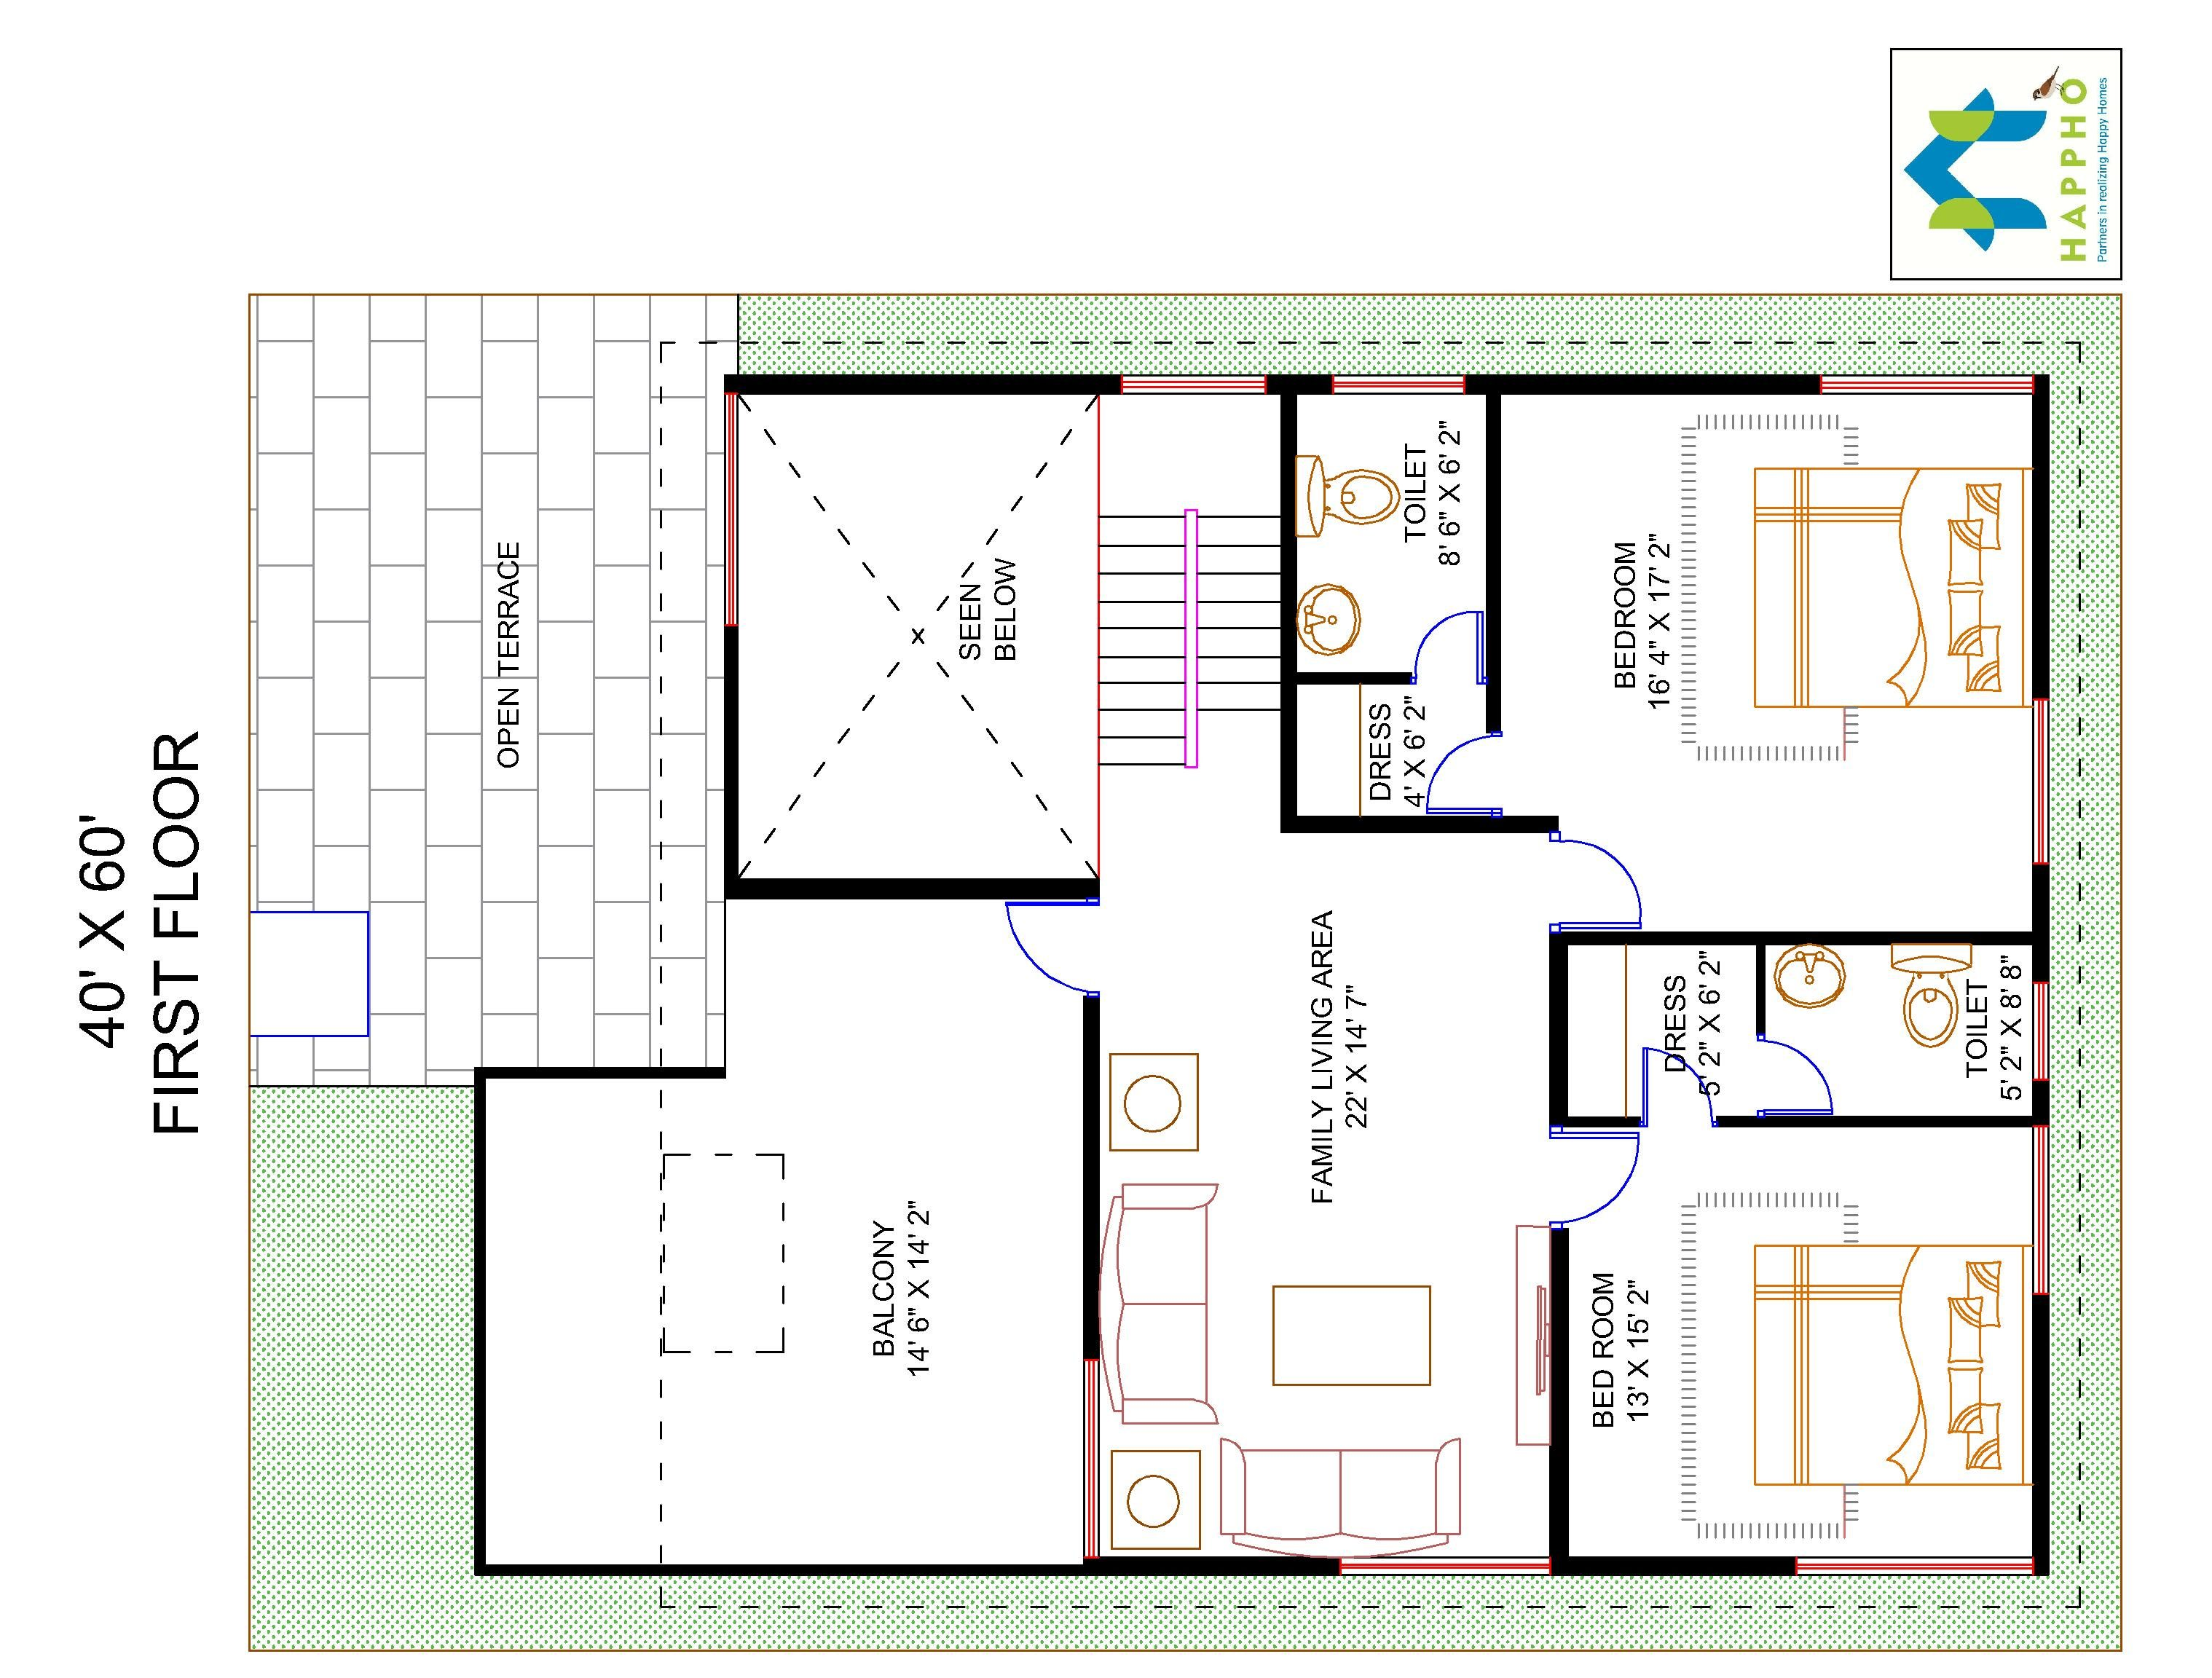 4-BHK Floor Plan For 40 X 60 Plot (2400 Square Feet/267